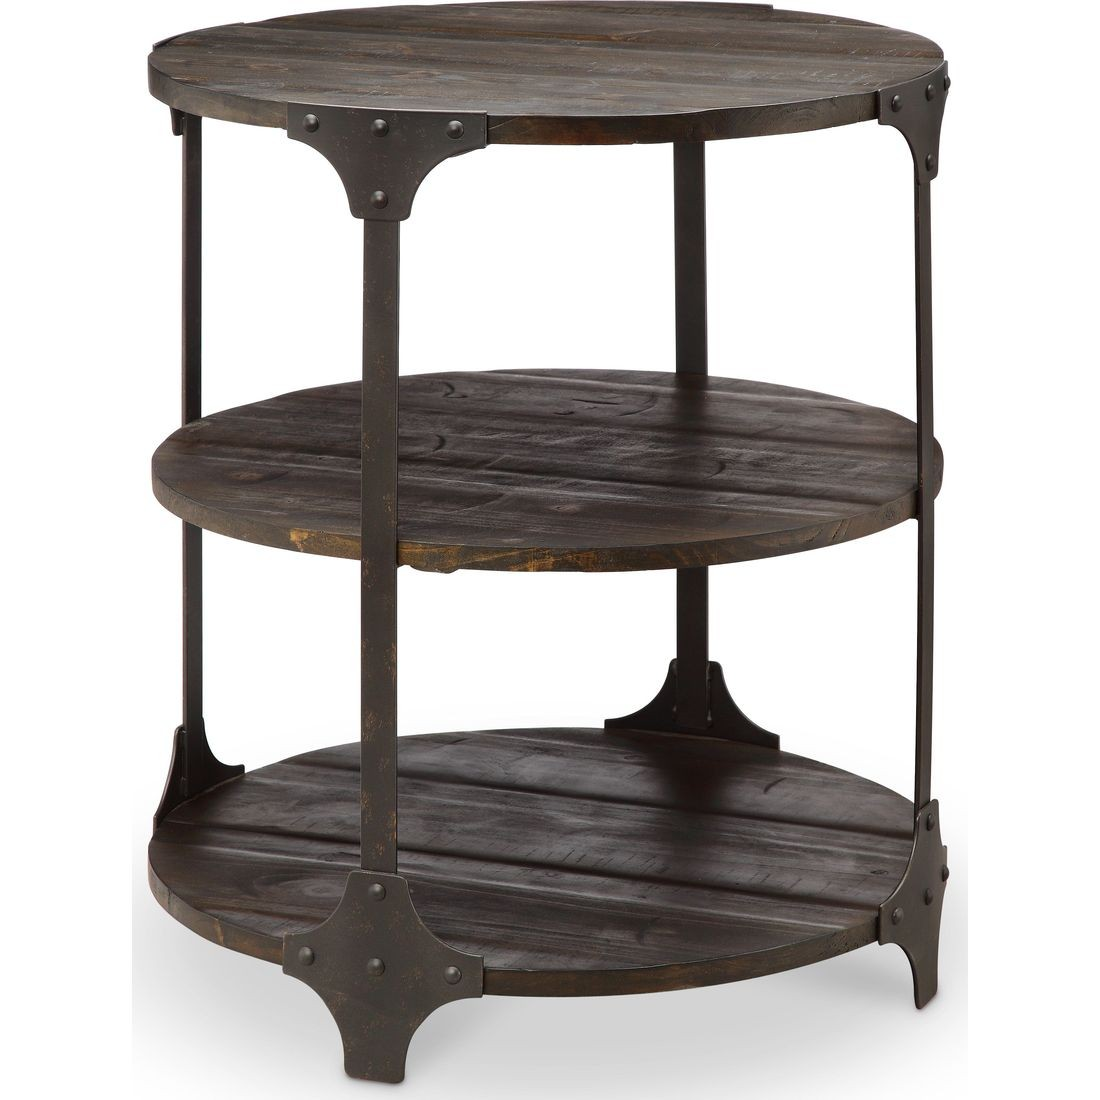 magnussen rydale round accent table dark chocolate aged iron nautical chandelier shades end design plans concrete look cymbal bag nesting cocktail set comfy patio furniture garden